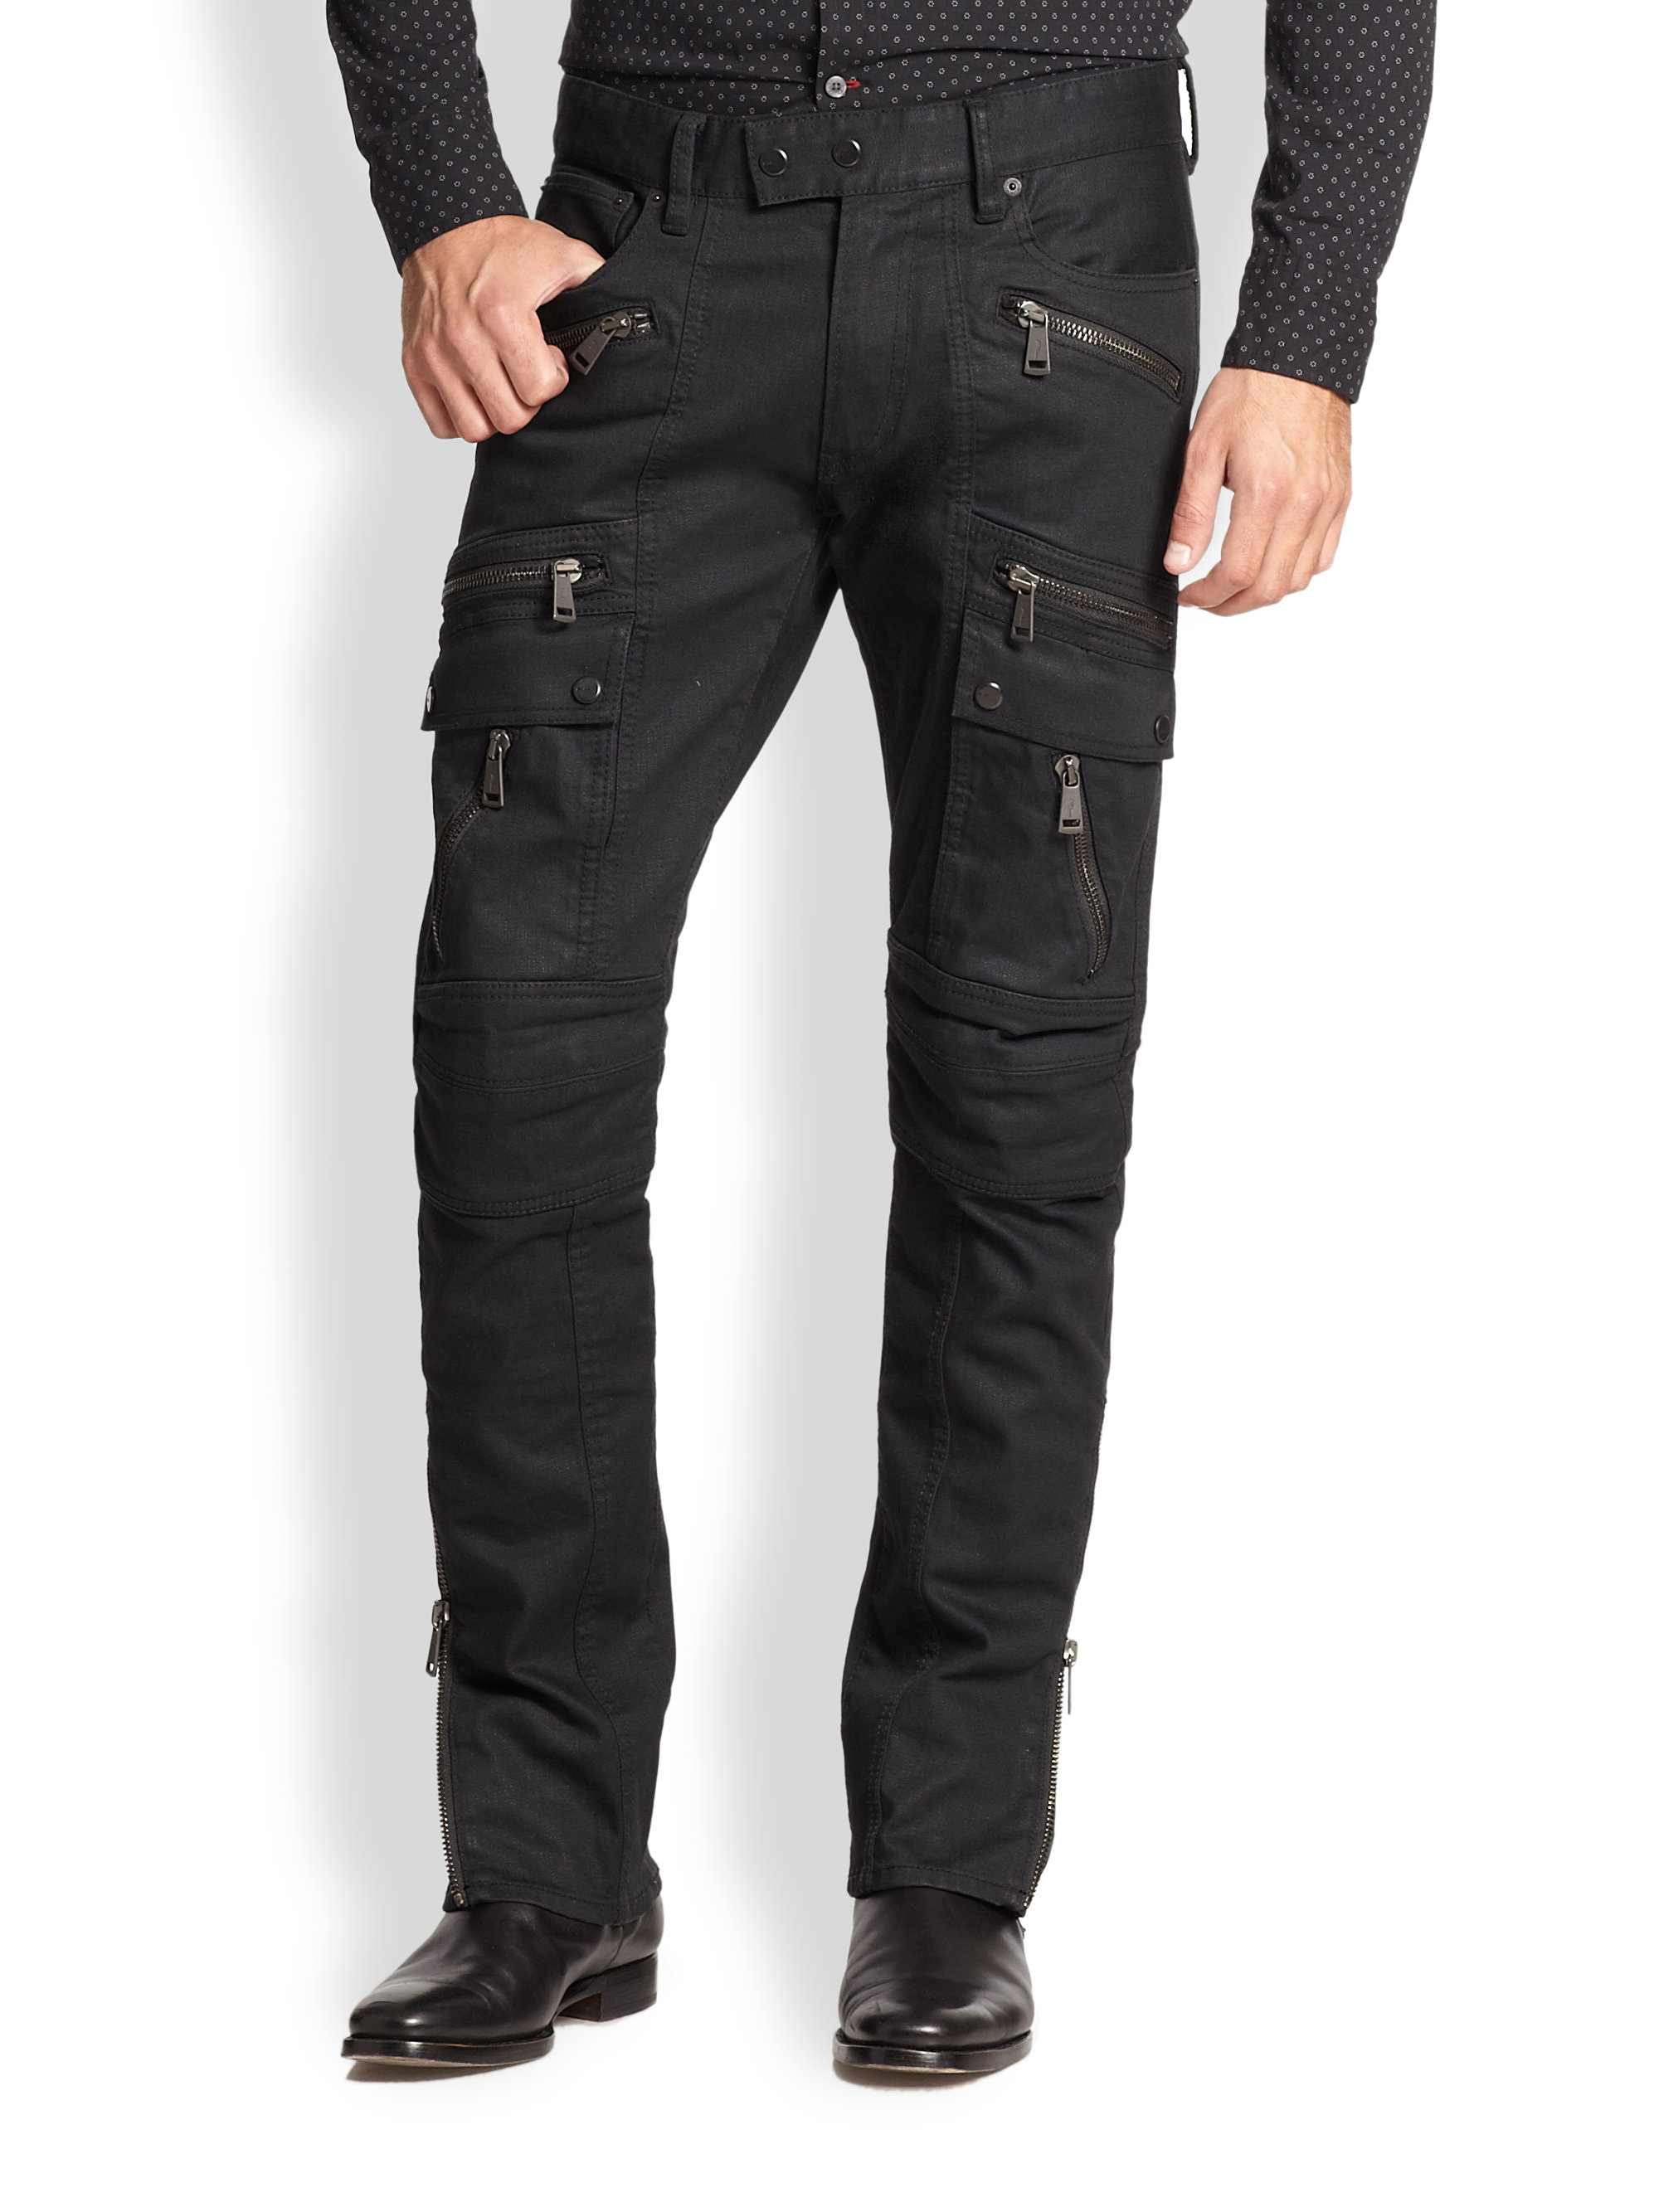 Ralph lauren black label Defender Moto Jeans in Black for Men | Lyst